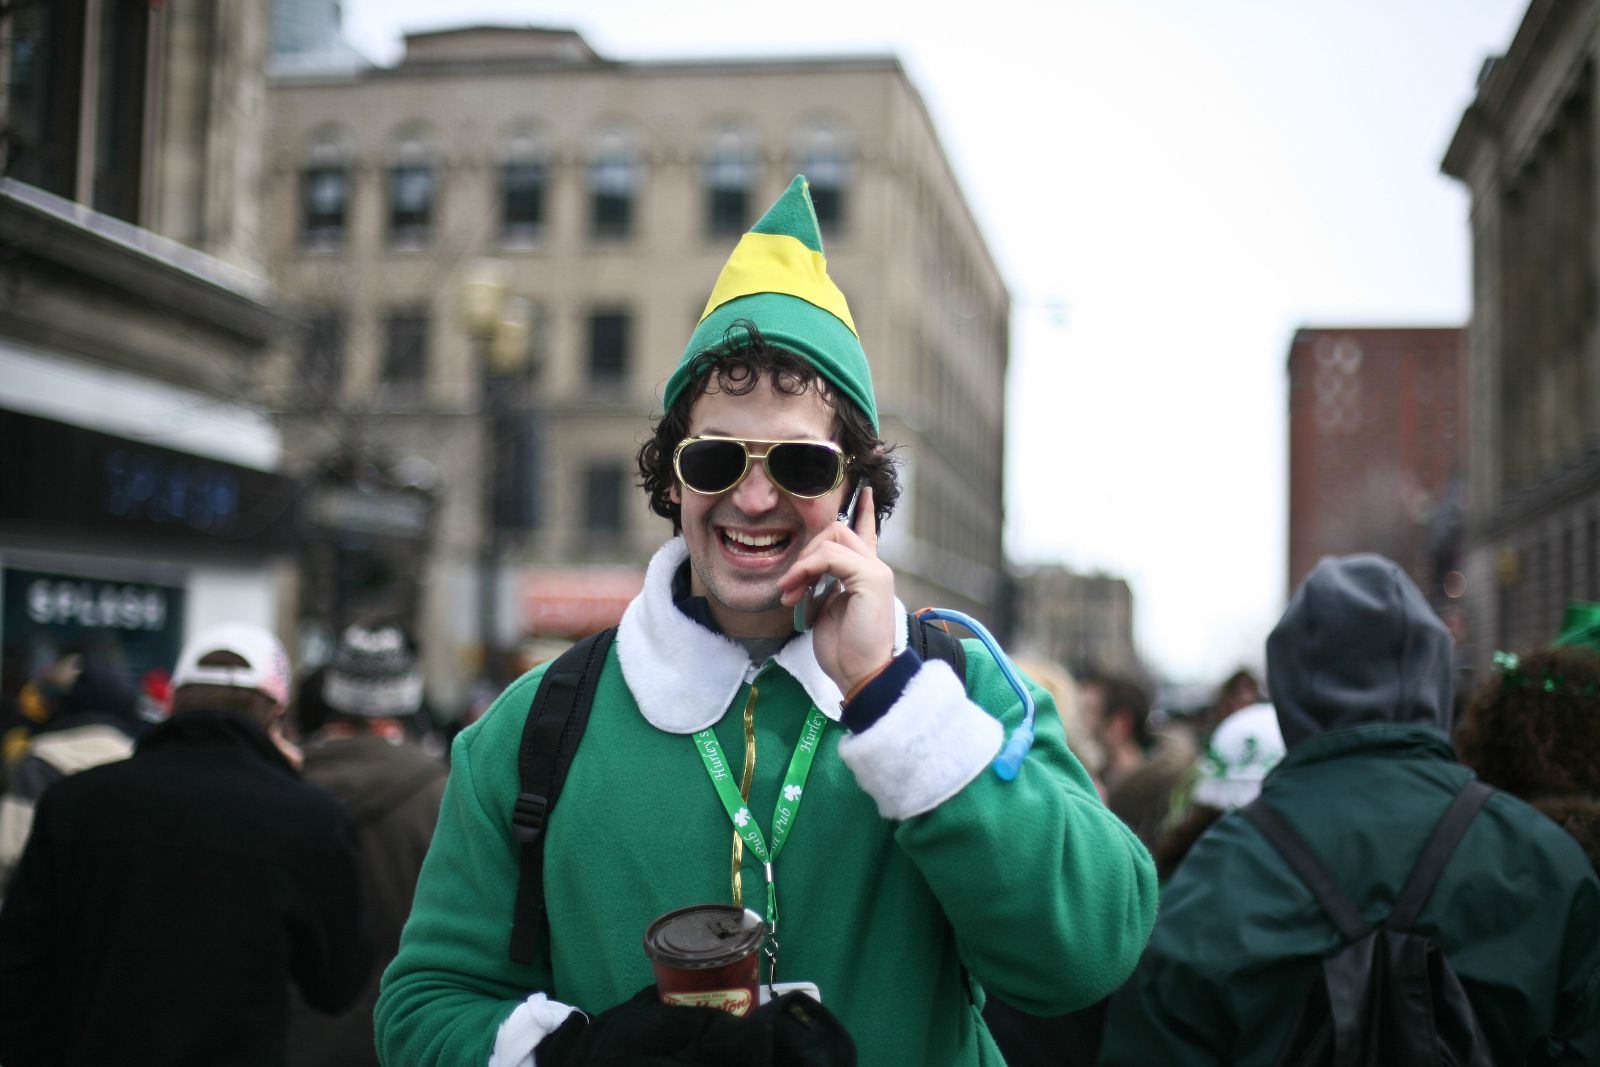 Montreal festivals in March 2017 include the St. Patrick's Day Parade.